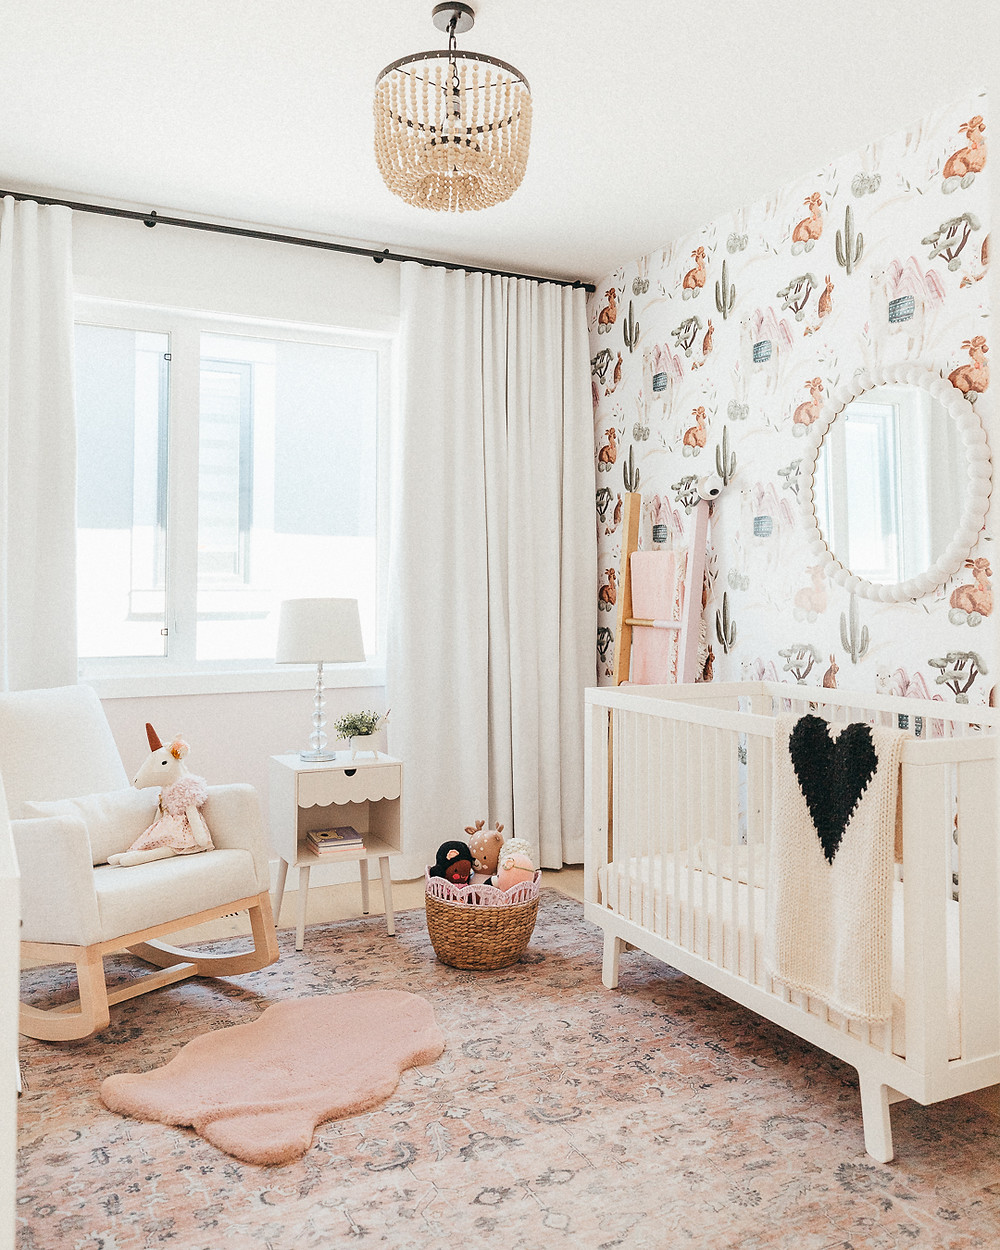 A boho modern baby girls nursery with llama and cactus wallpaper, a blush pink rug, a white joya monte designs rocking chair, a beaded light pendant, a white crib and a scalloped pink wall behind white drapery.